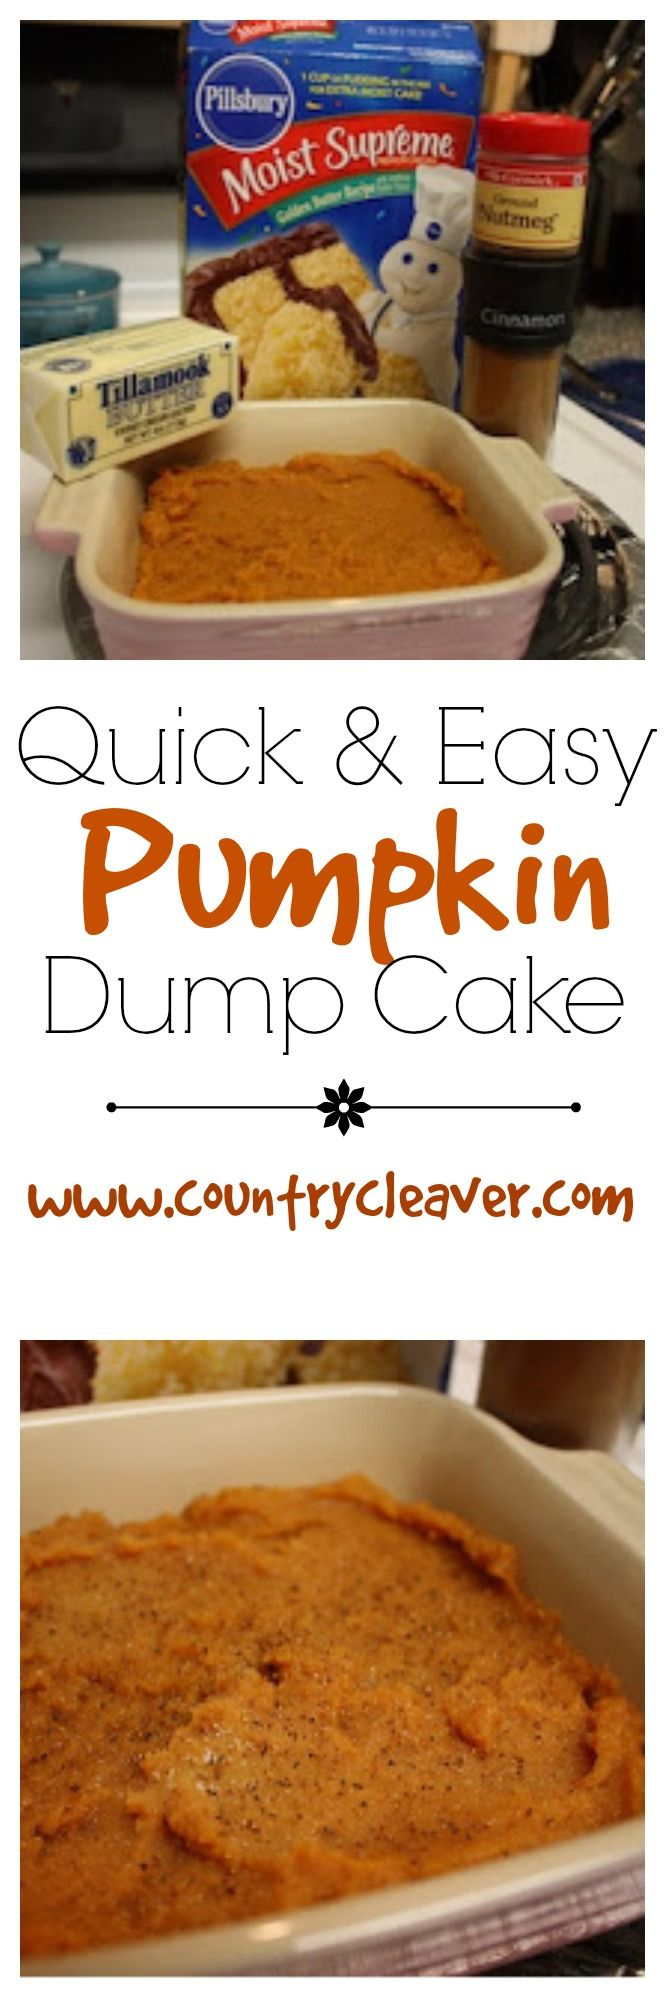 Pumpkin dump cake is a one dish miracle cake! Perfect for those quick nights you want dessert.